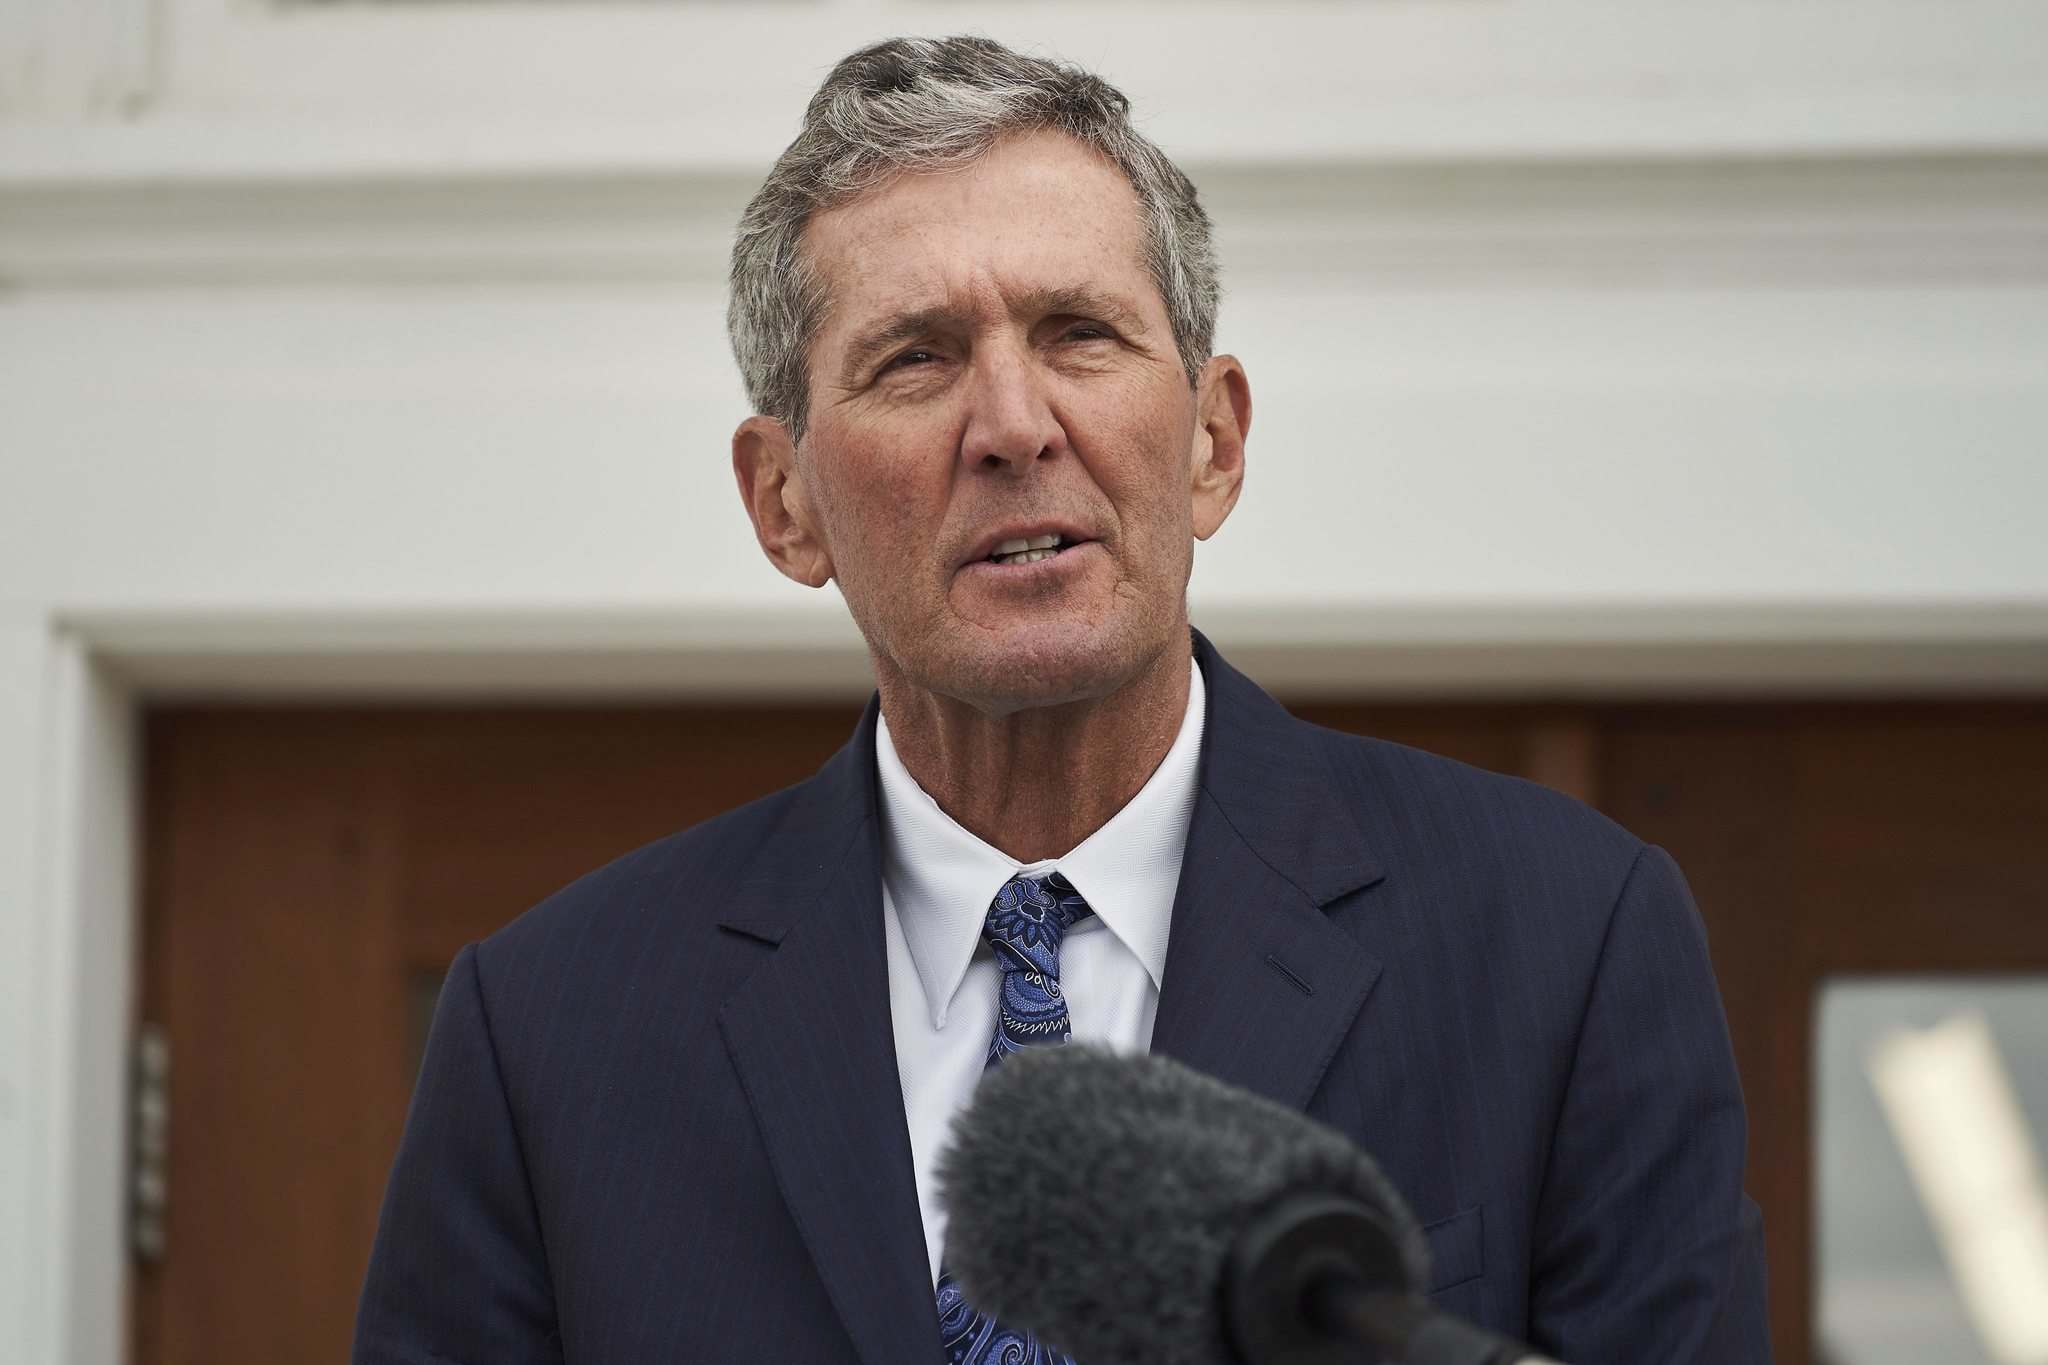 On Aug. 24, then-premier Brian Pallister, Health Minister Audrey Gordon and chief provincial public health officer Dr. Brent Roussin all said mandatory vaccinations were necessary to combat the fourth wave of COVID-19. (David Lipnowski / The Canadian Press files)